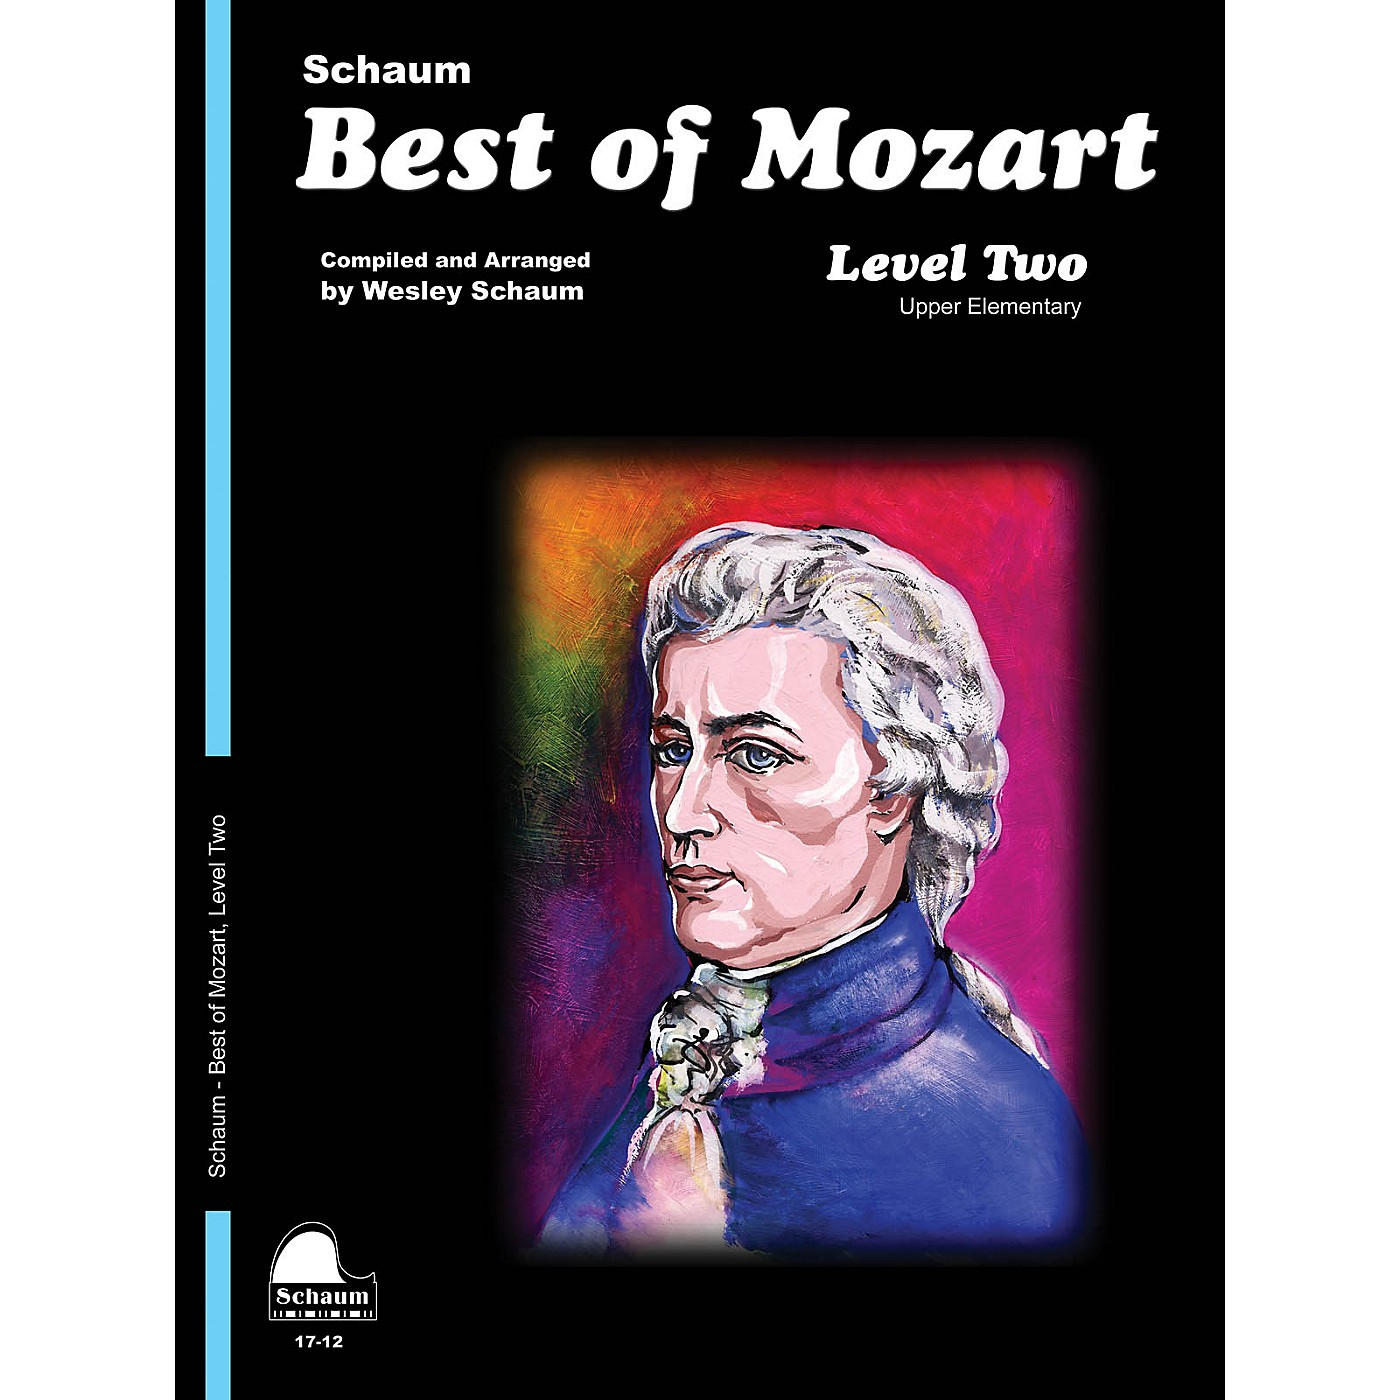 SCHAUM Best of Mozart Educational Piano Book by Wolfgang Amadeus Mozart (Level Late Elem) thumbnail